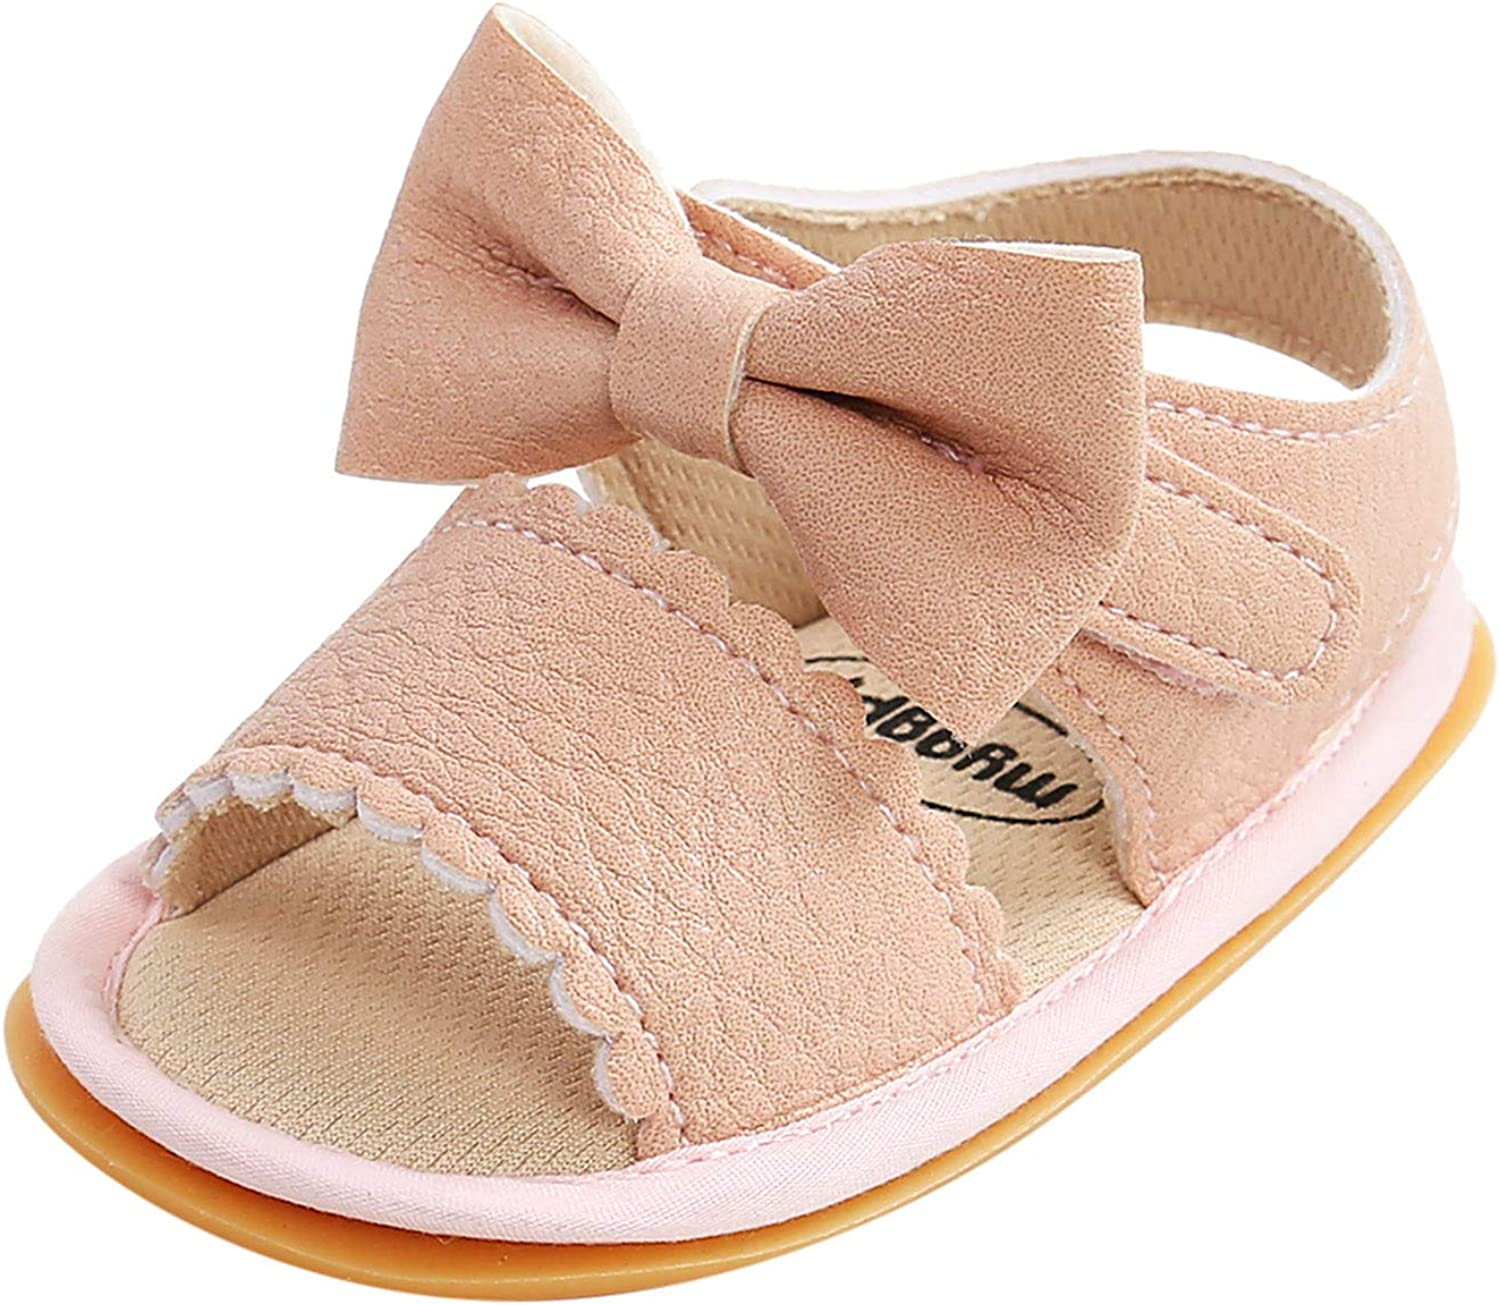 Baby Girls Sandals Max 74% discount OFF Bow Soft Leather Rubber Sole Slip Non